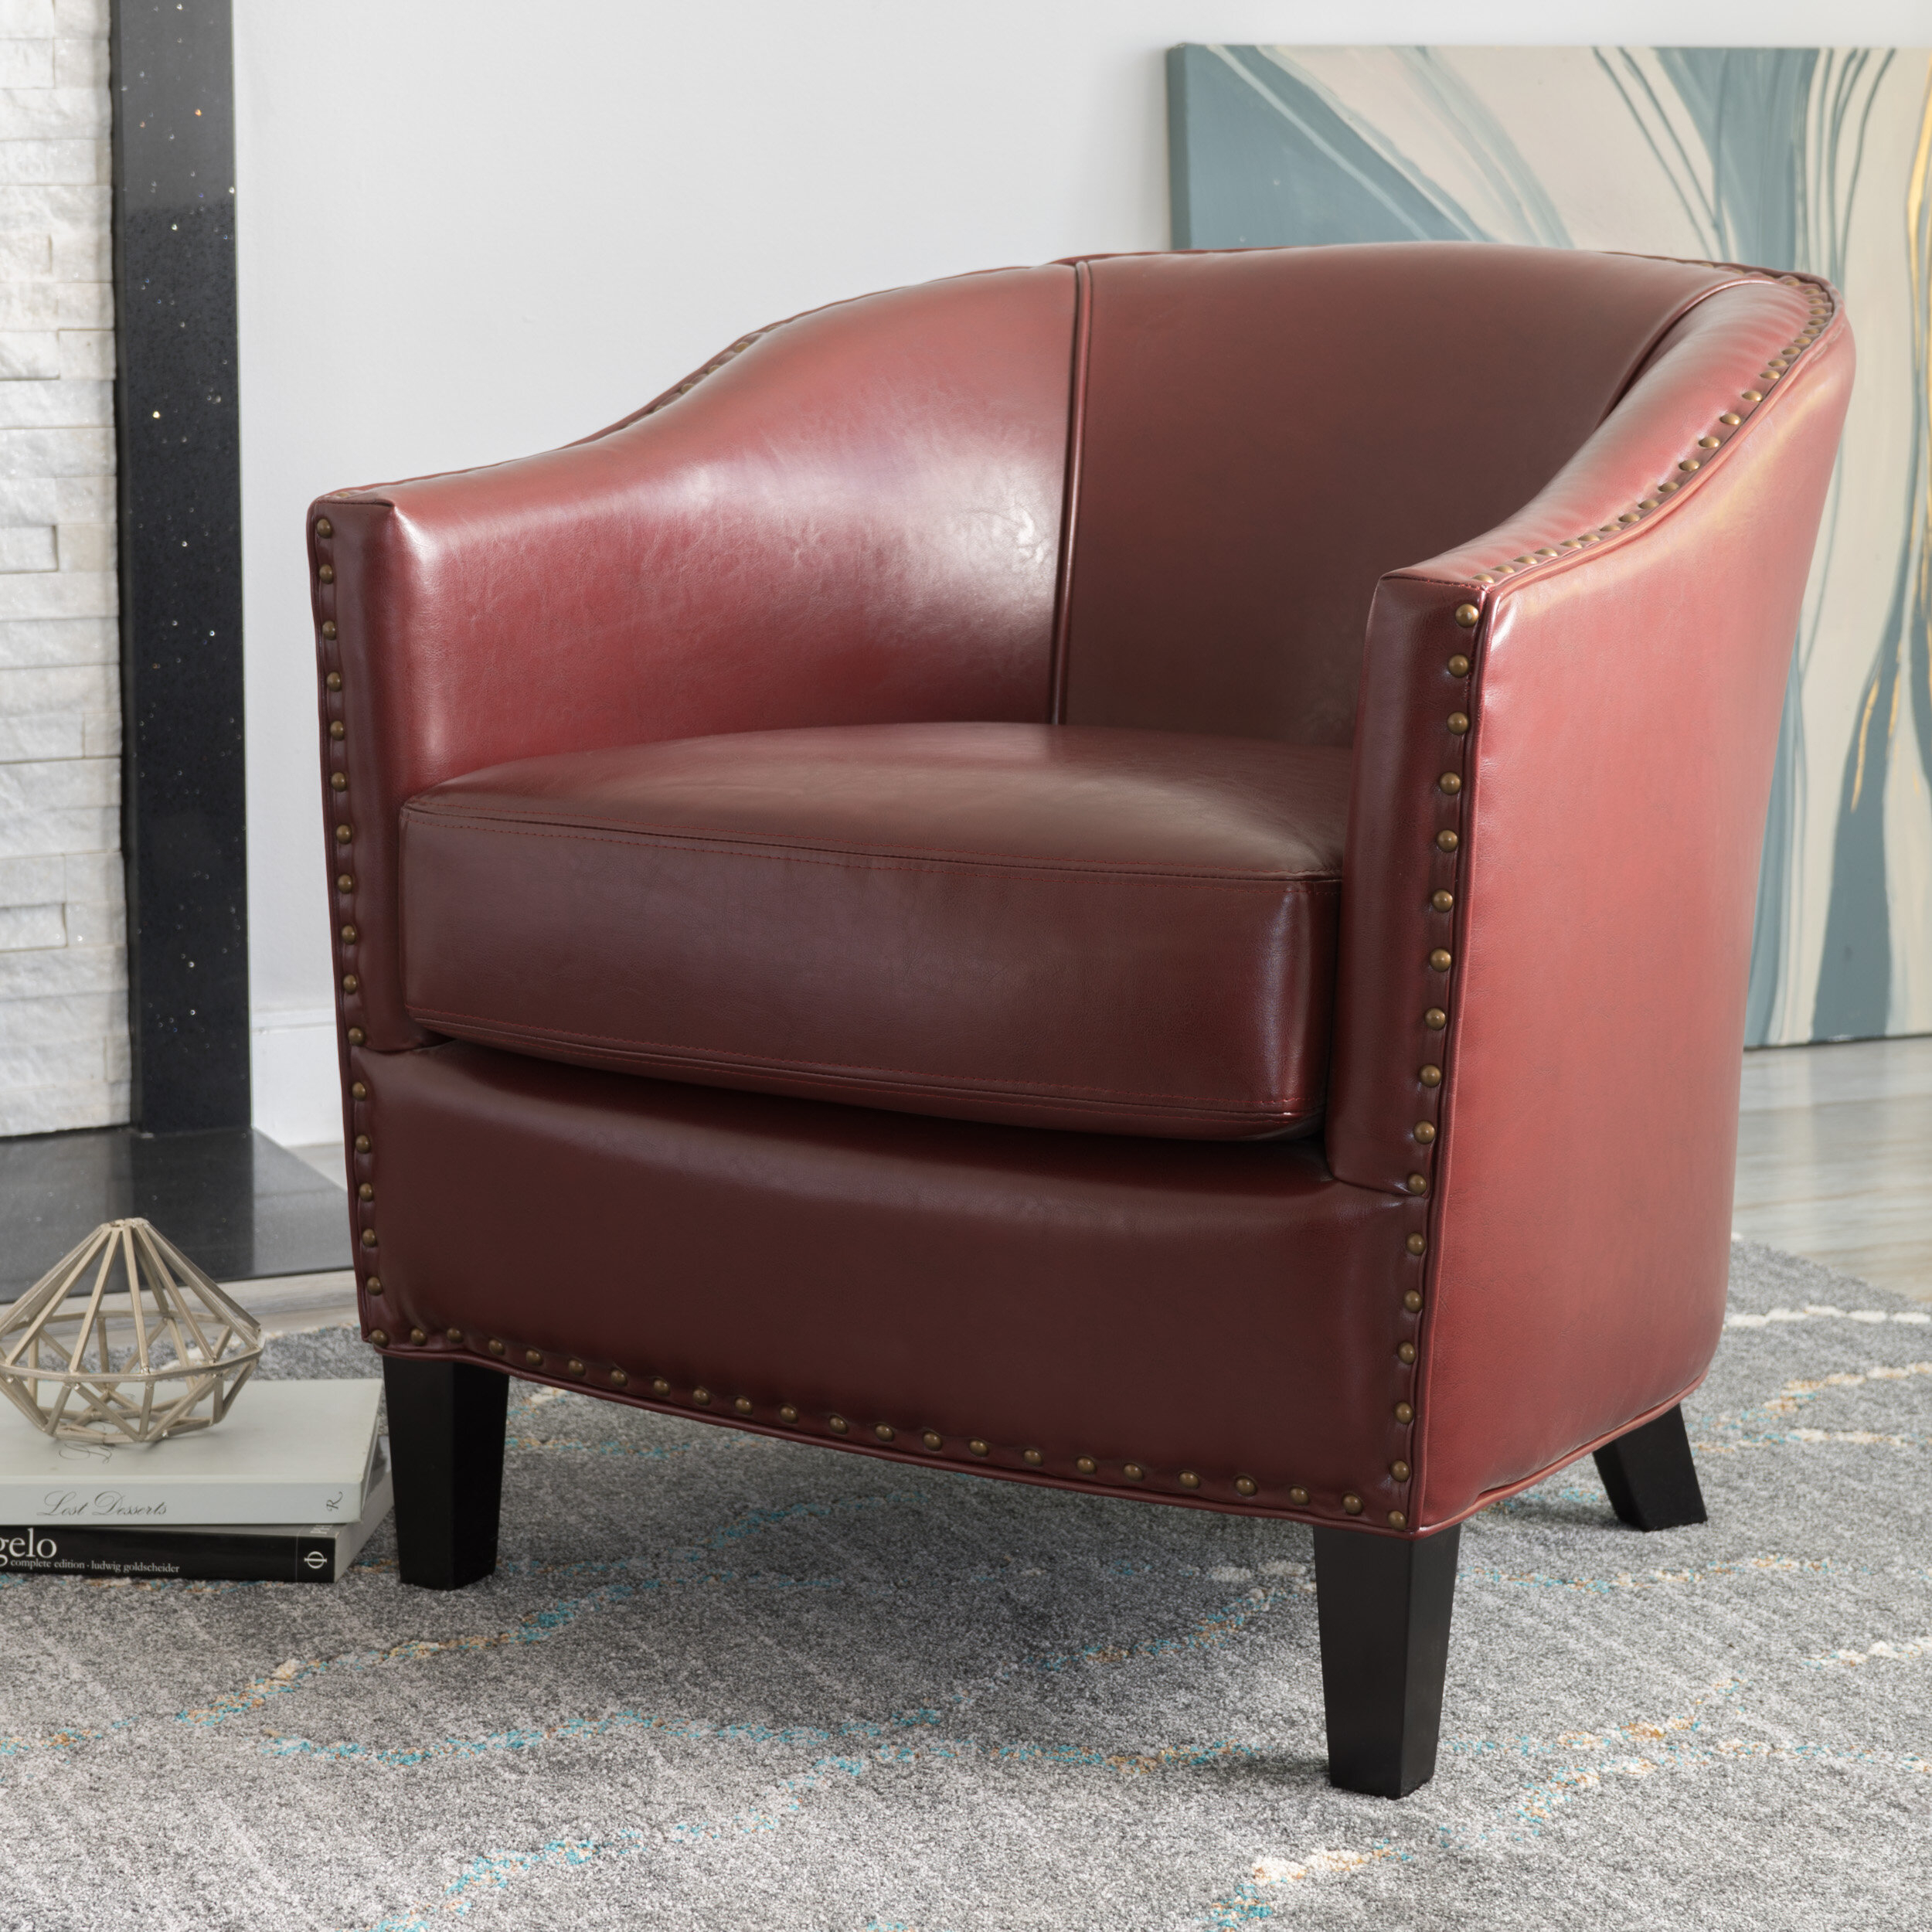 Barrel Ivory & Cream Accent Chairs You'Ll Love In 2021 | Wayfair Pertaining To Coomer Faux Leather Barrel Chairs (View 10 of 15)